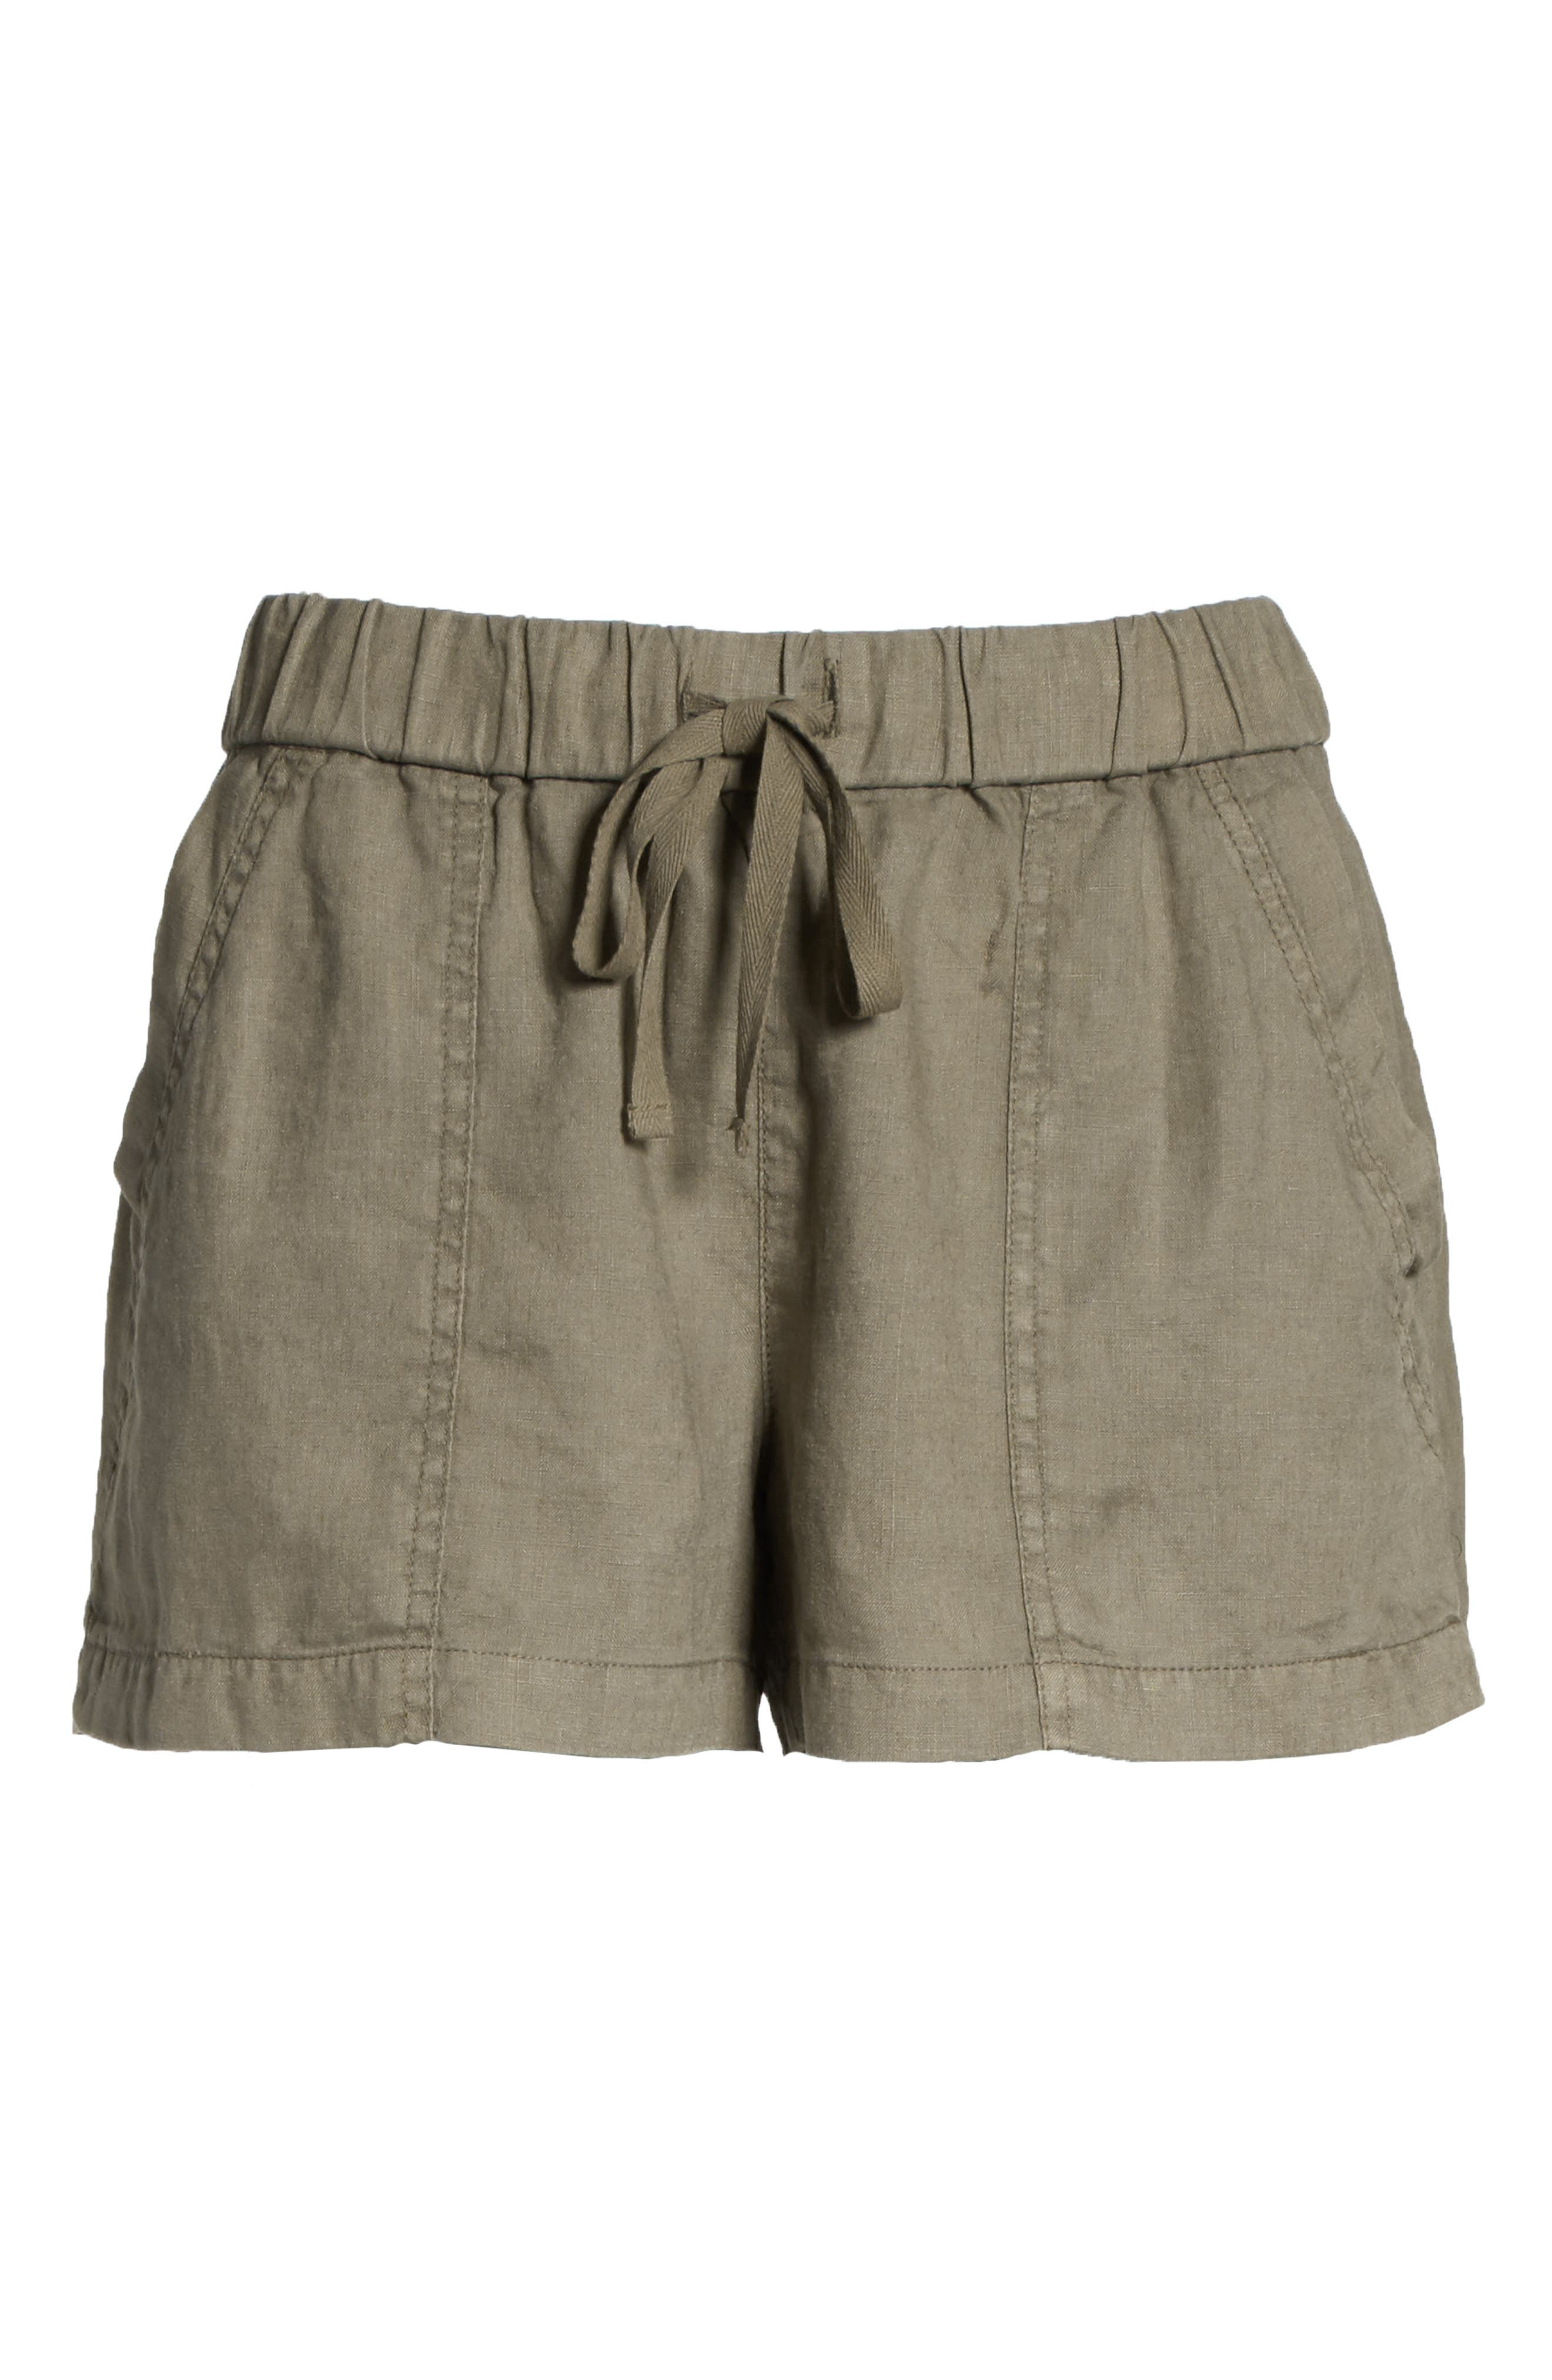 Fosette Linen Drawstring Shorts,                             Alternate thumbnail 11, color,